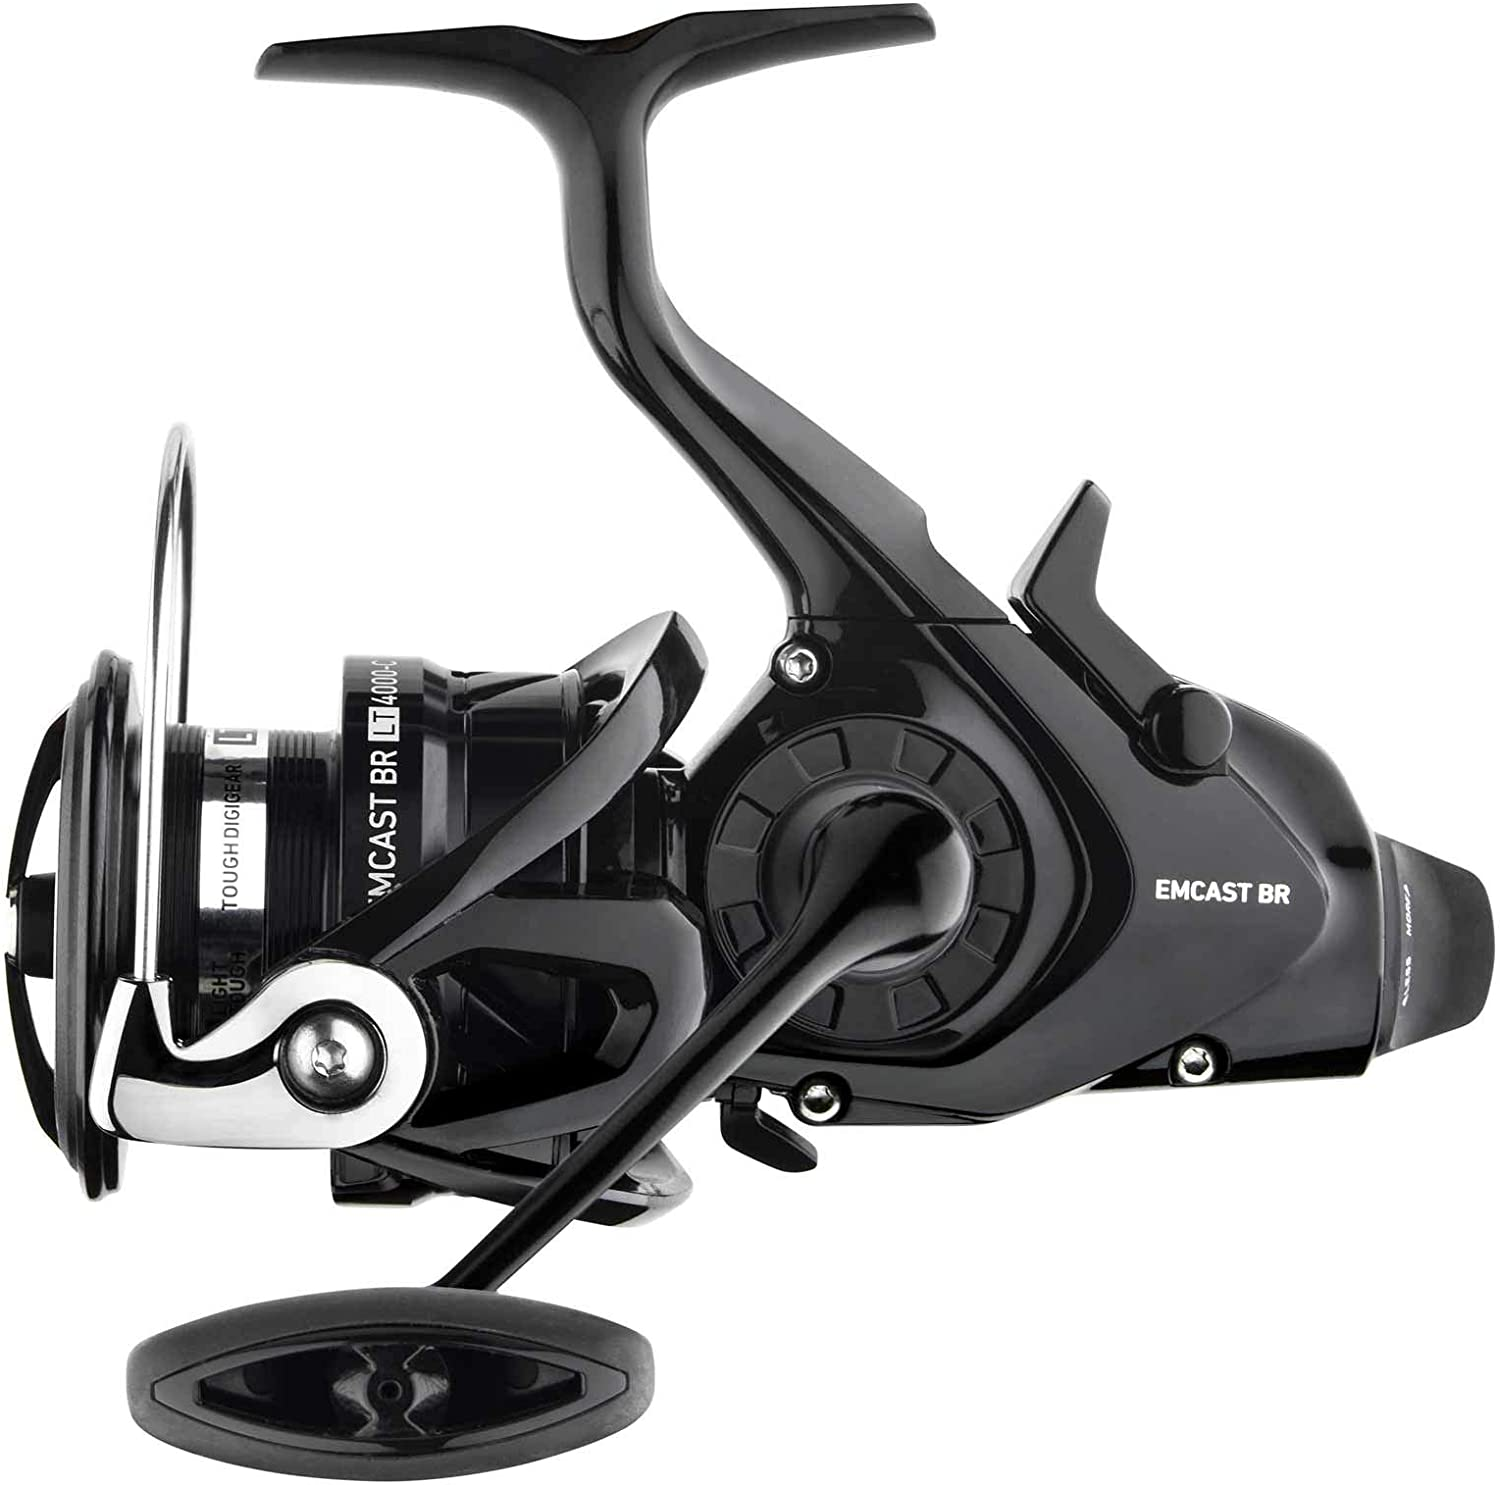 Daiwa ECLTBR5000-C Emcast Bite & Run Spinning, 3 + 1, 5.2 : 1, Black